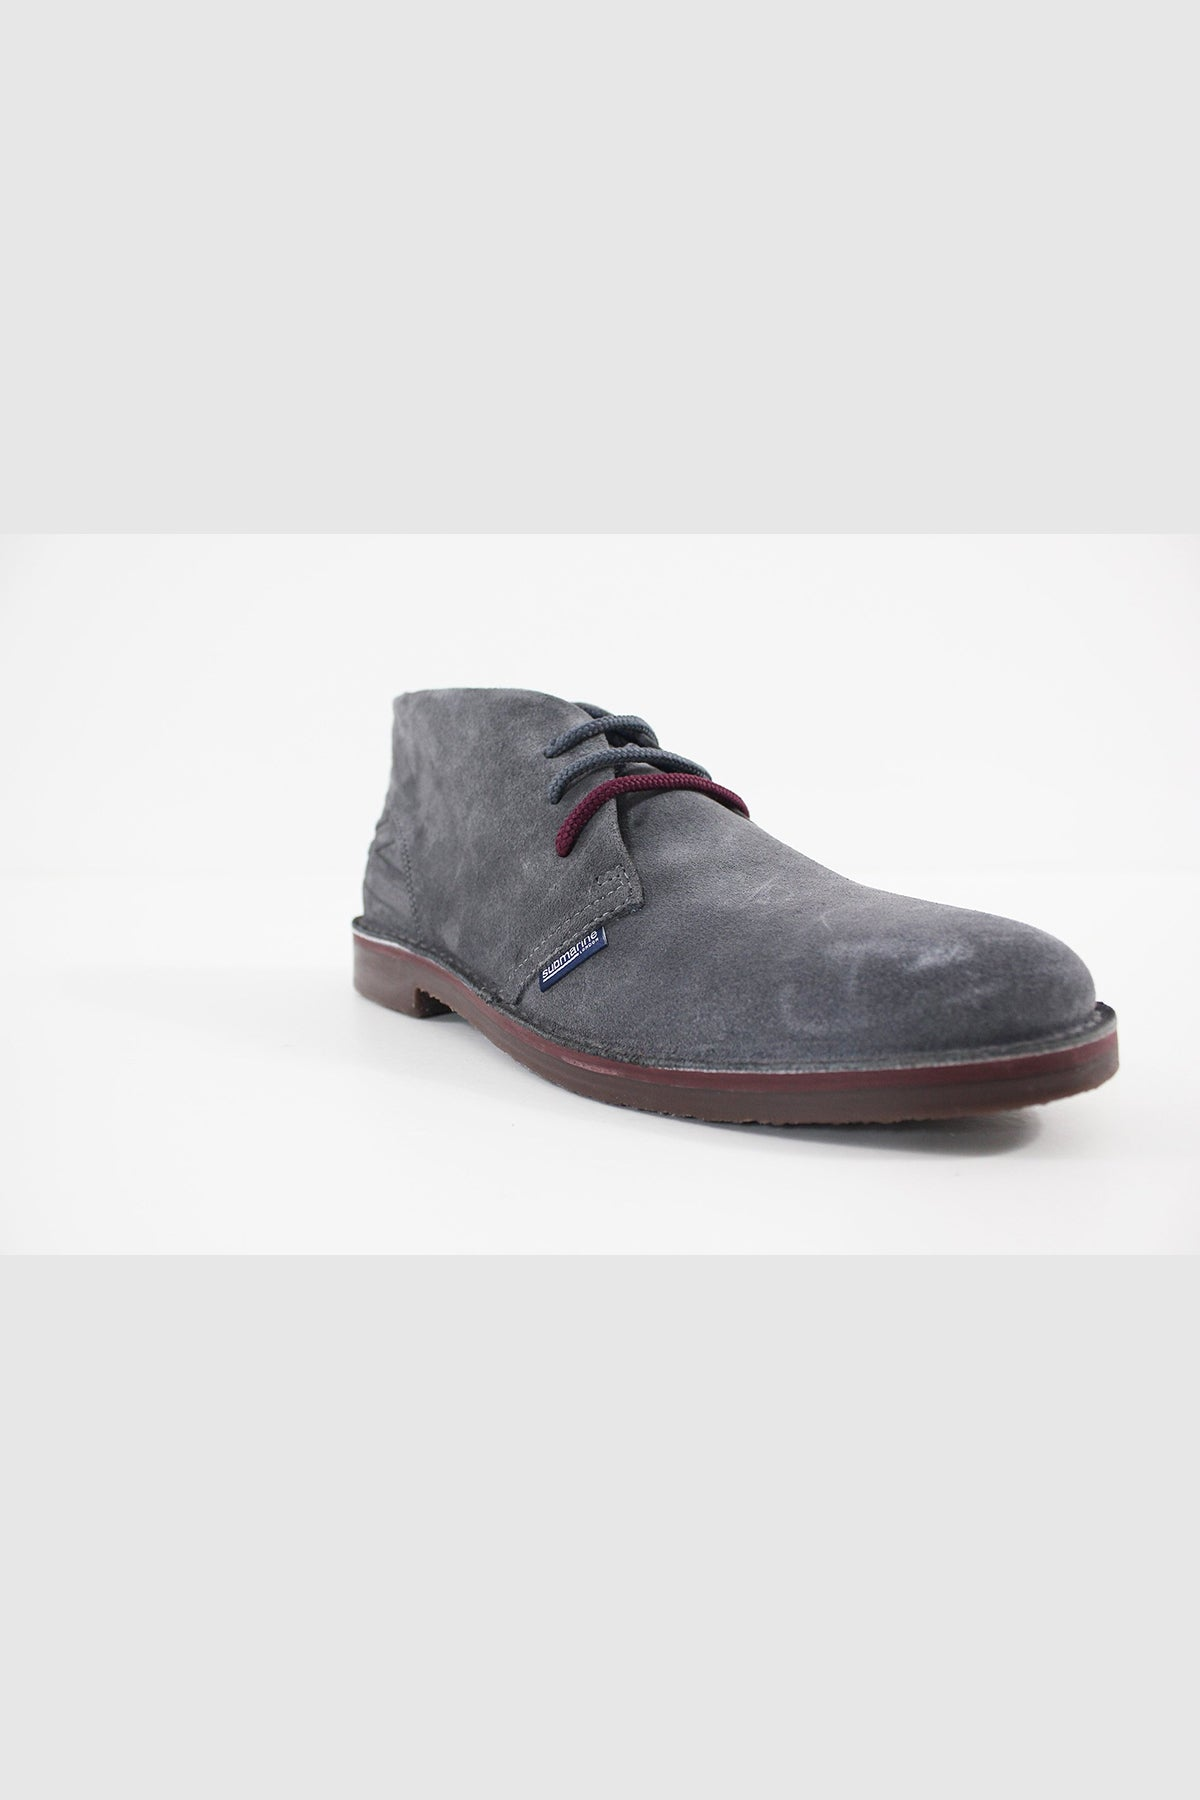 Submarine London - Women NEW MANCHESTER SUEDE UNISEX (ASH-CREMISI)